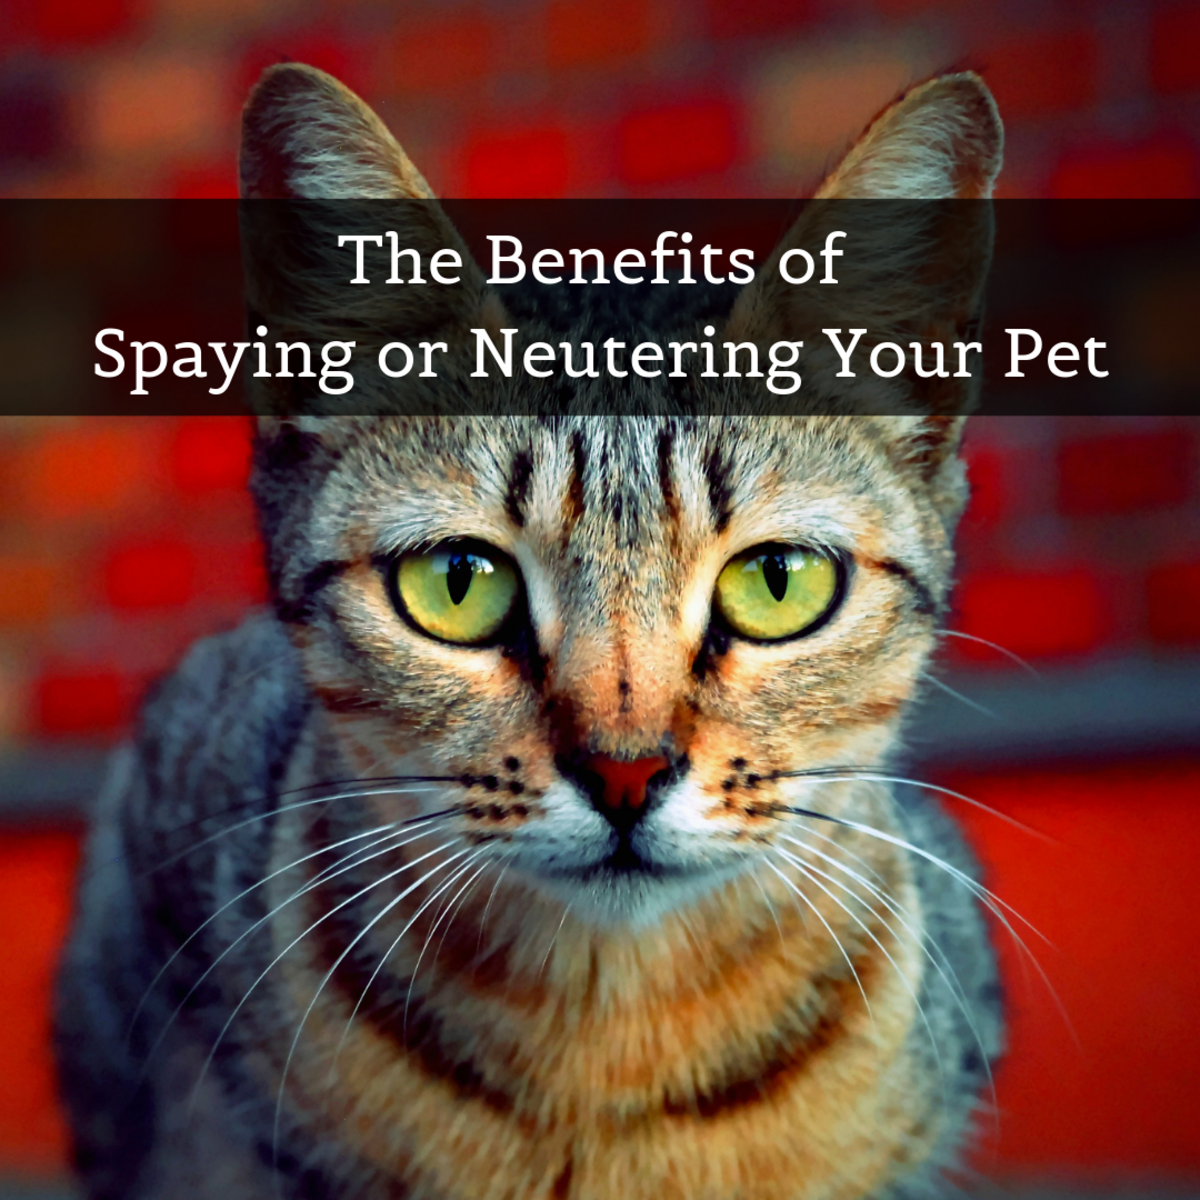 Learn why spaying or neutering a dog or cat benefits the animal, the owner, and society at large.